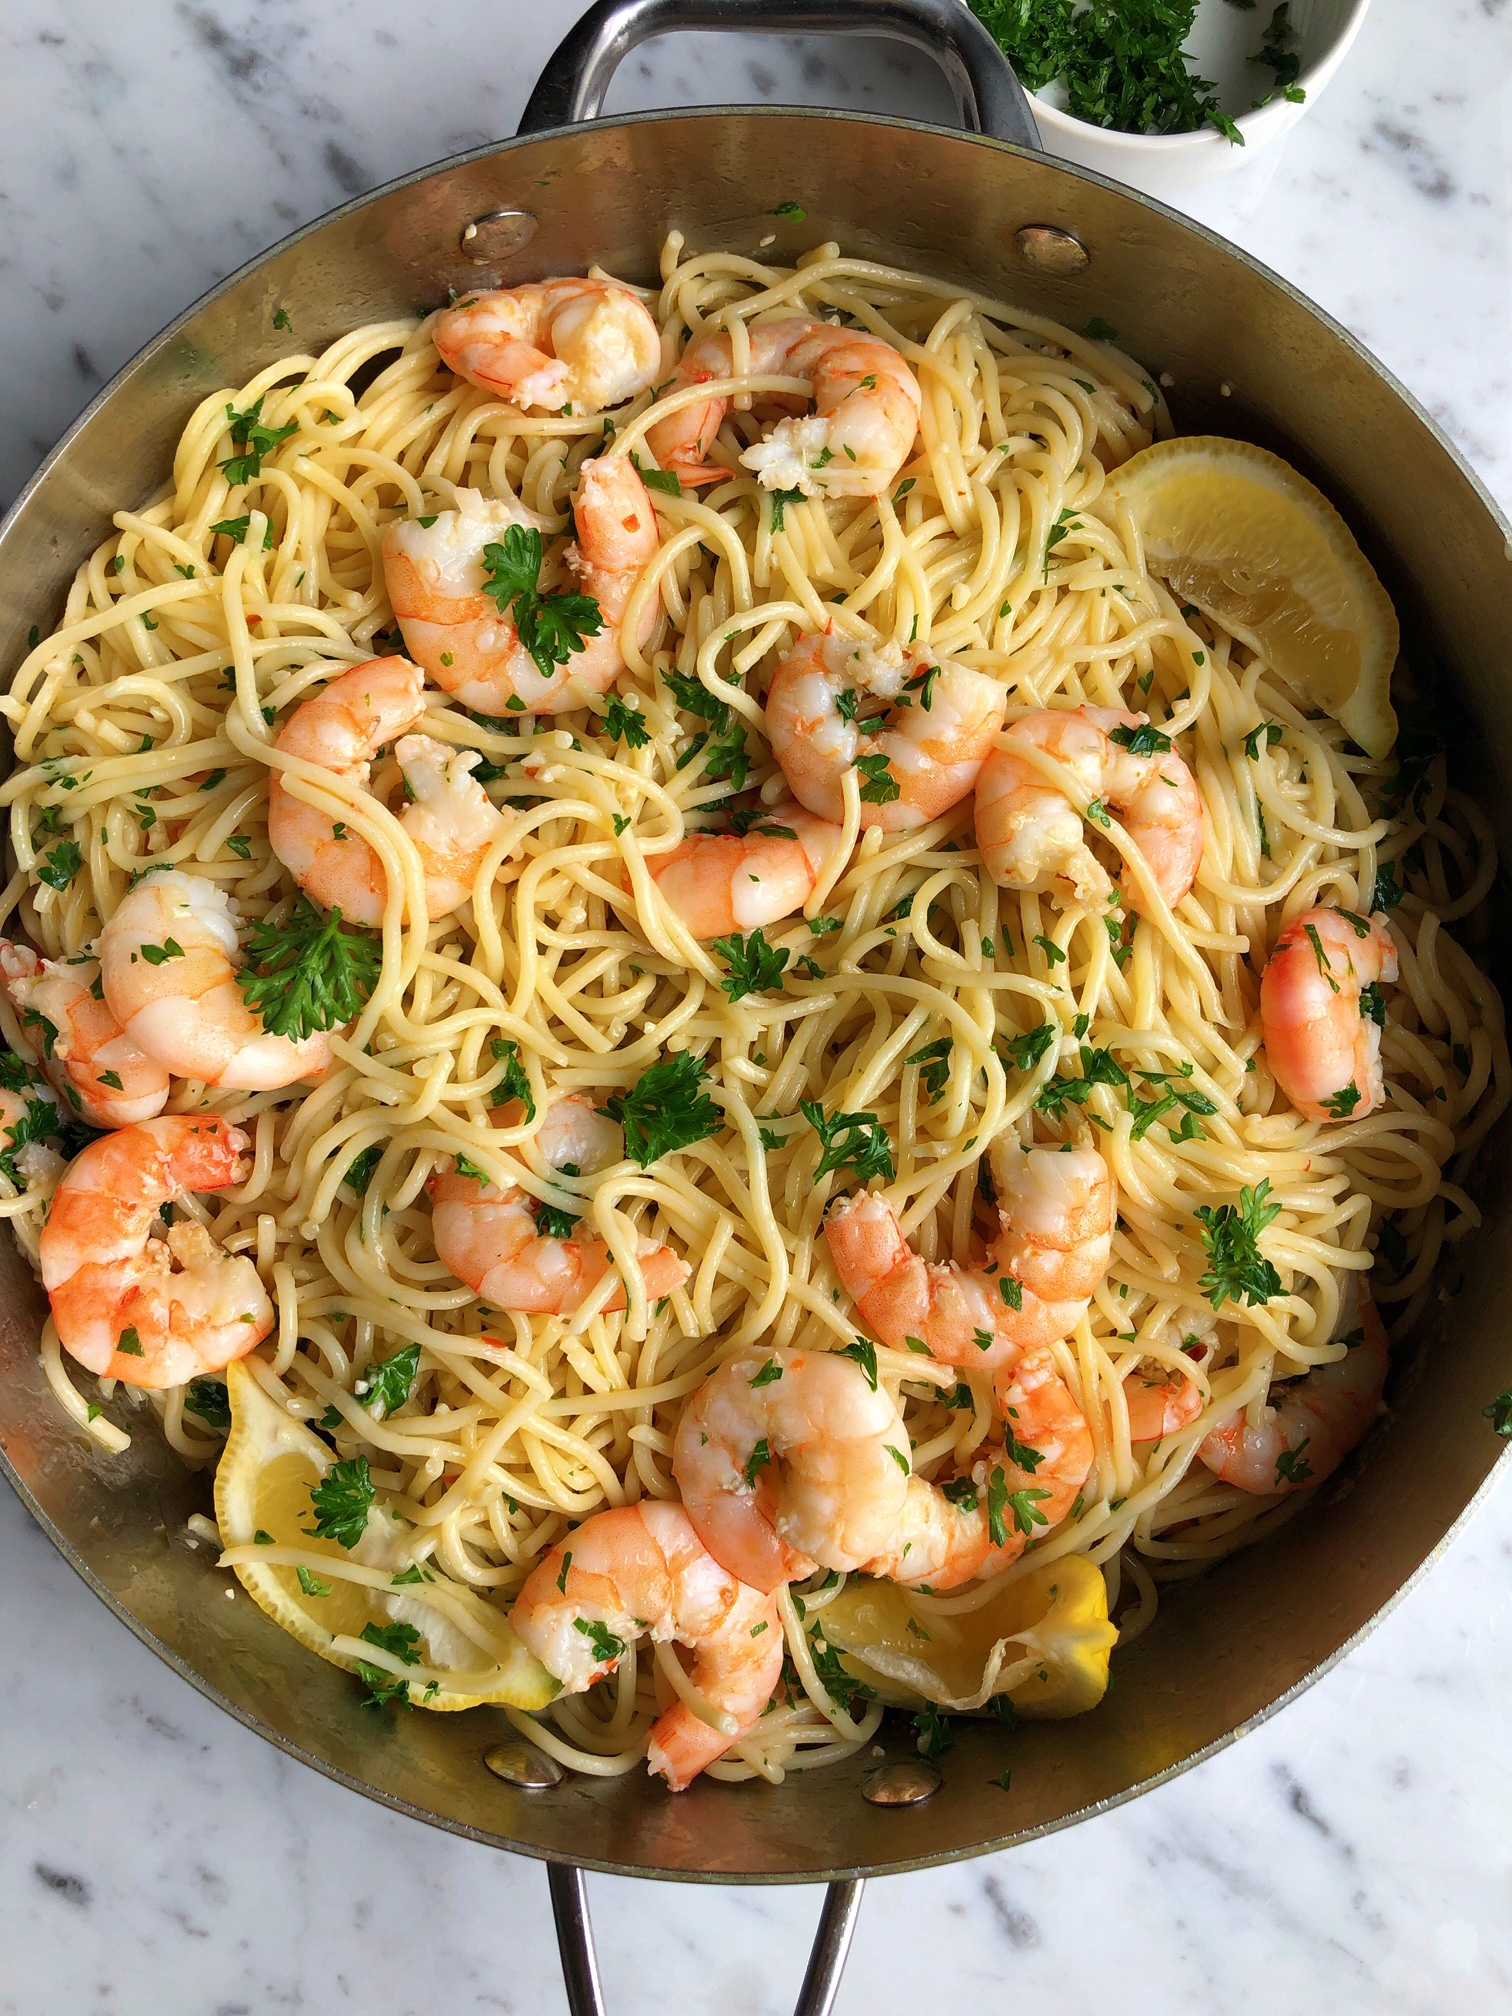 Shrimp Scampi with Pasta!! A simple garlic, white wine and butter sauce that is absolutely delicious! Add pasta or grab some crusty bread!